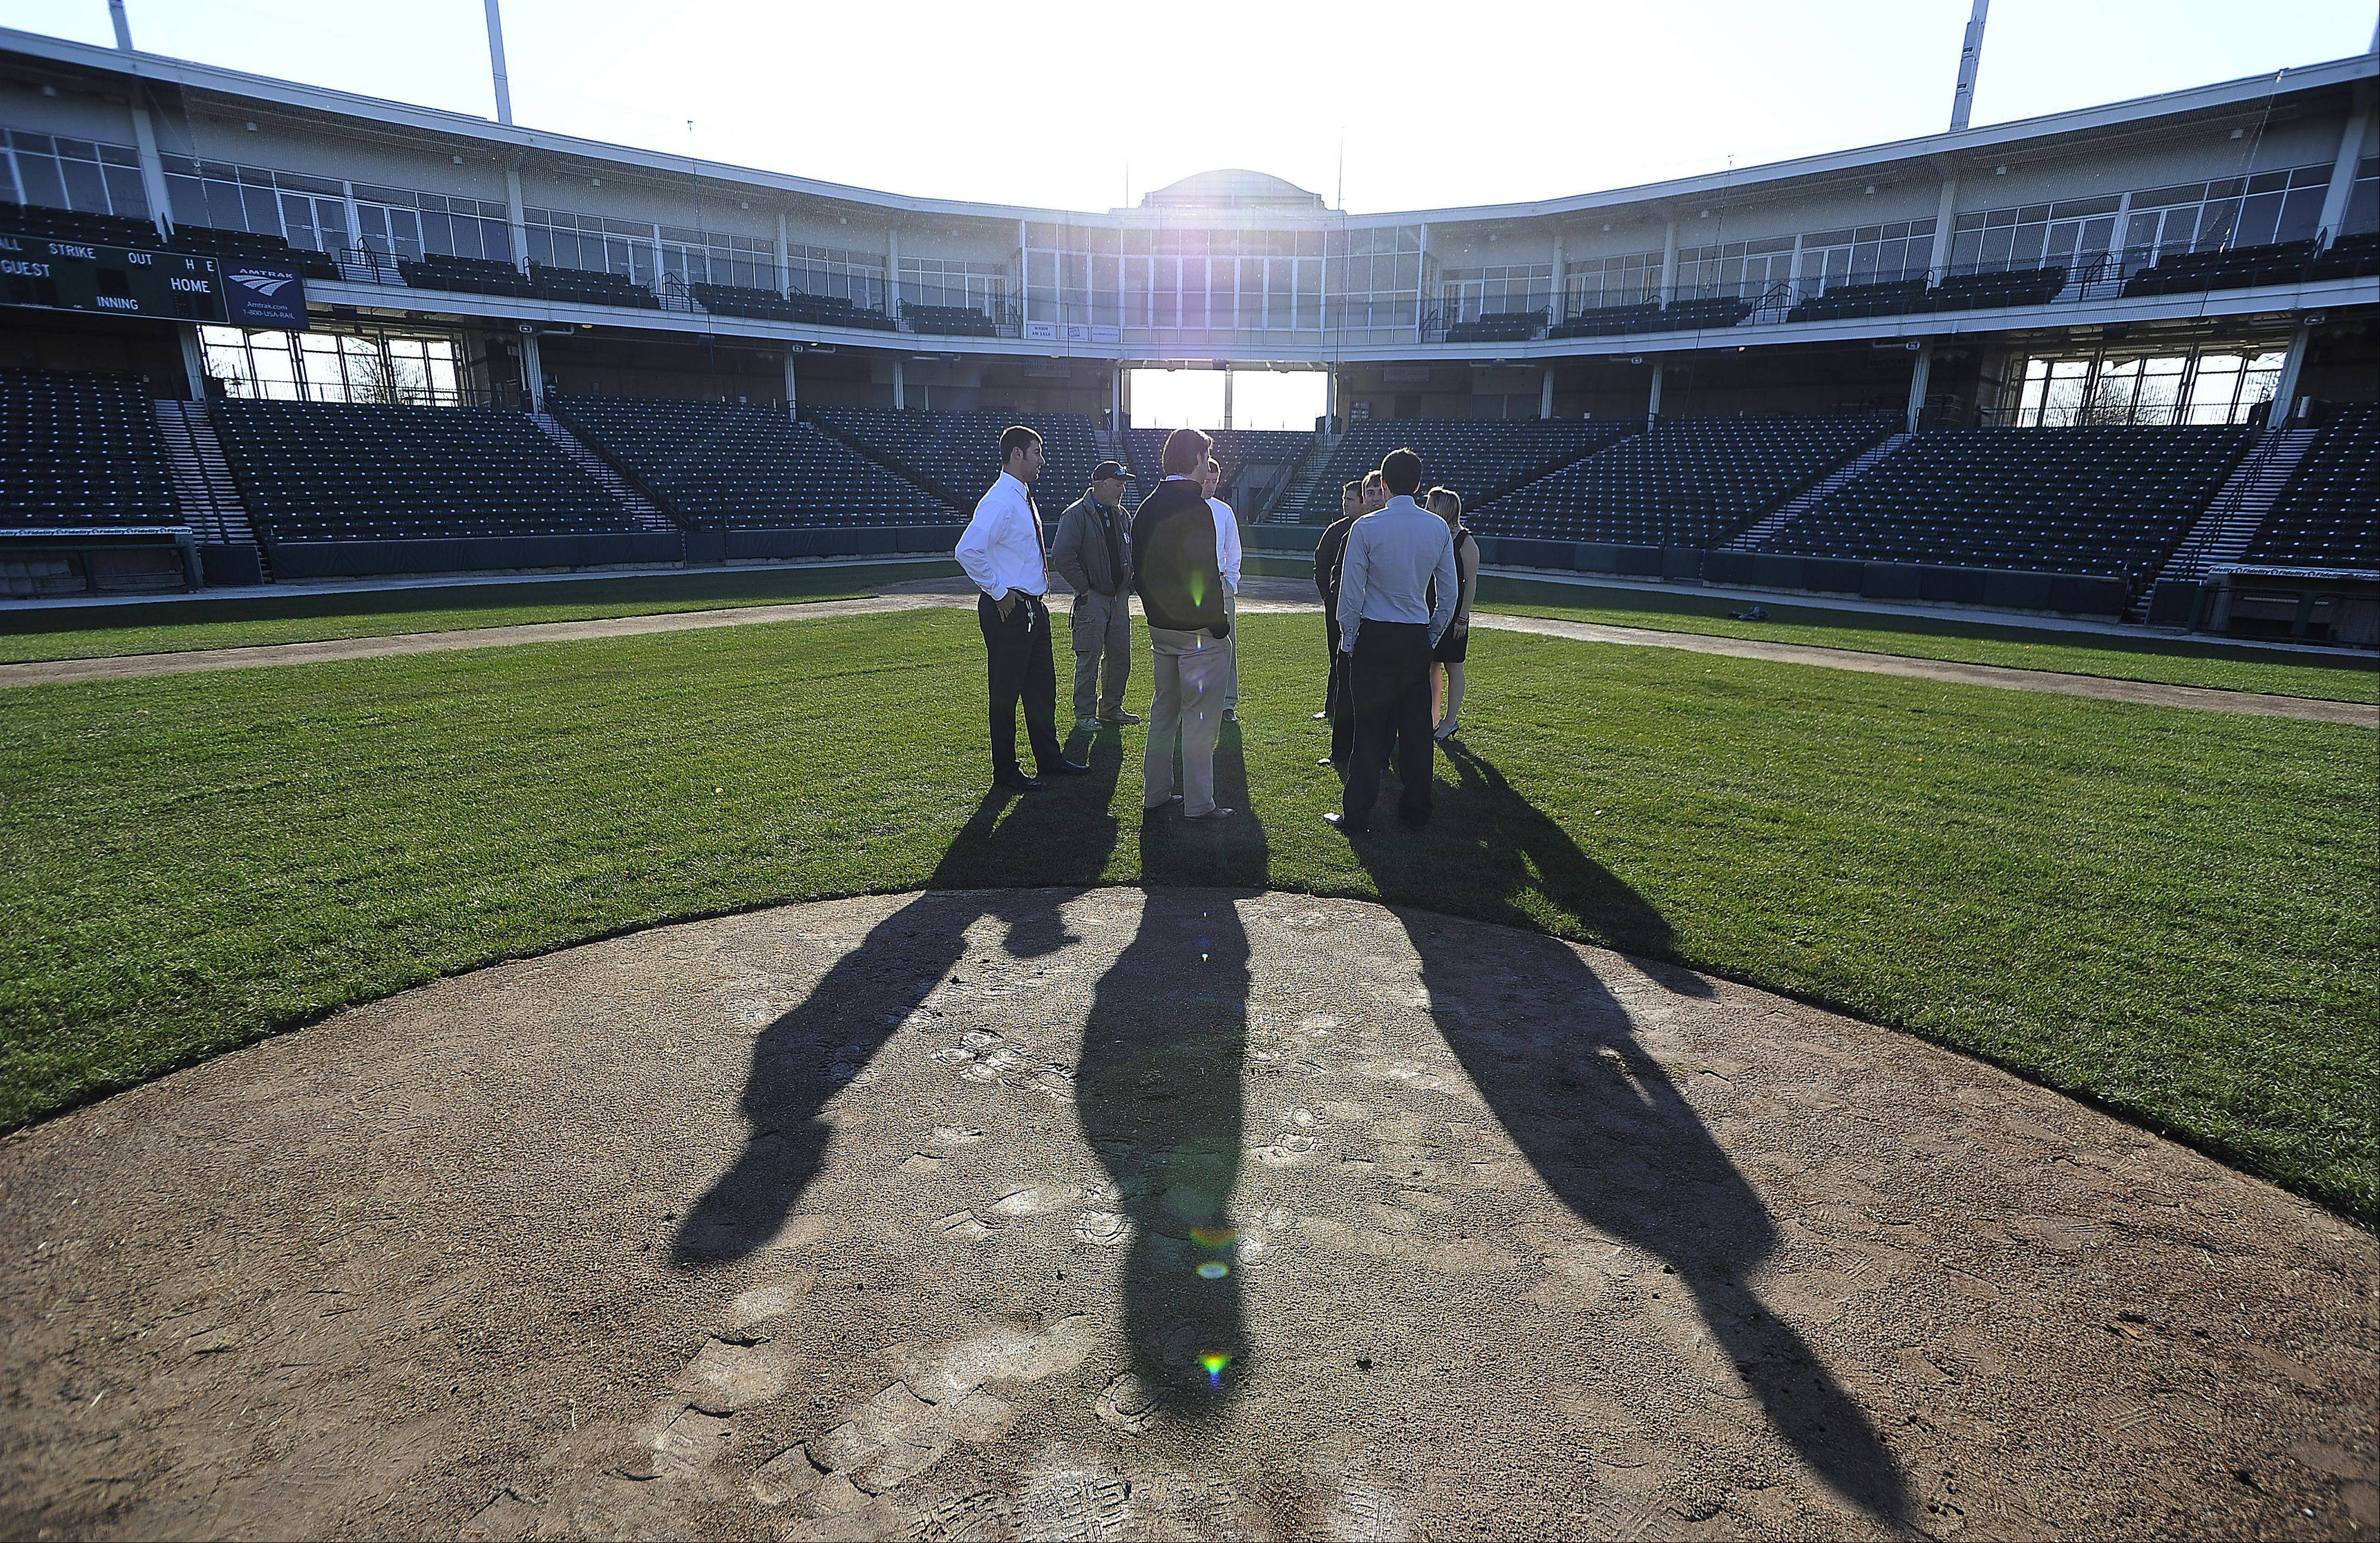 Andy Viano, president and general manager of the Schaumburg Boomers baseball team, and other personnel take the field looking over the new turf grass at the stadium.